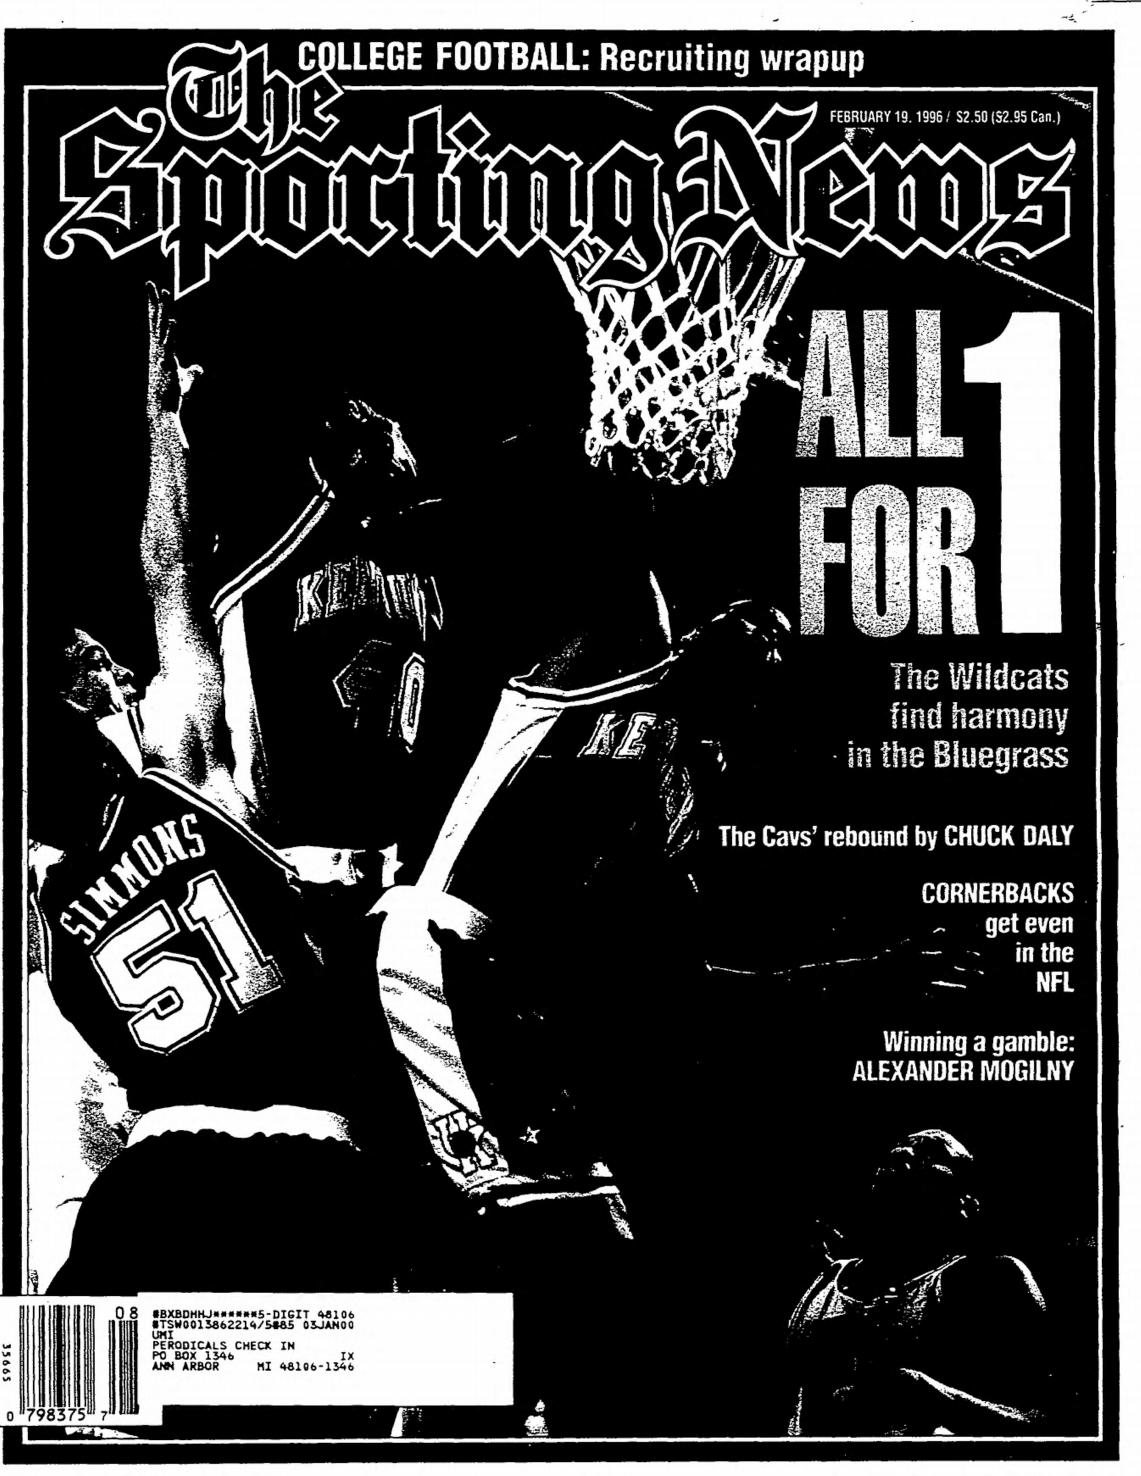 06320db5ff5 The sporting news 02 19 1996 by Mexico Sports Collectibles - issuu